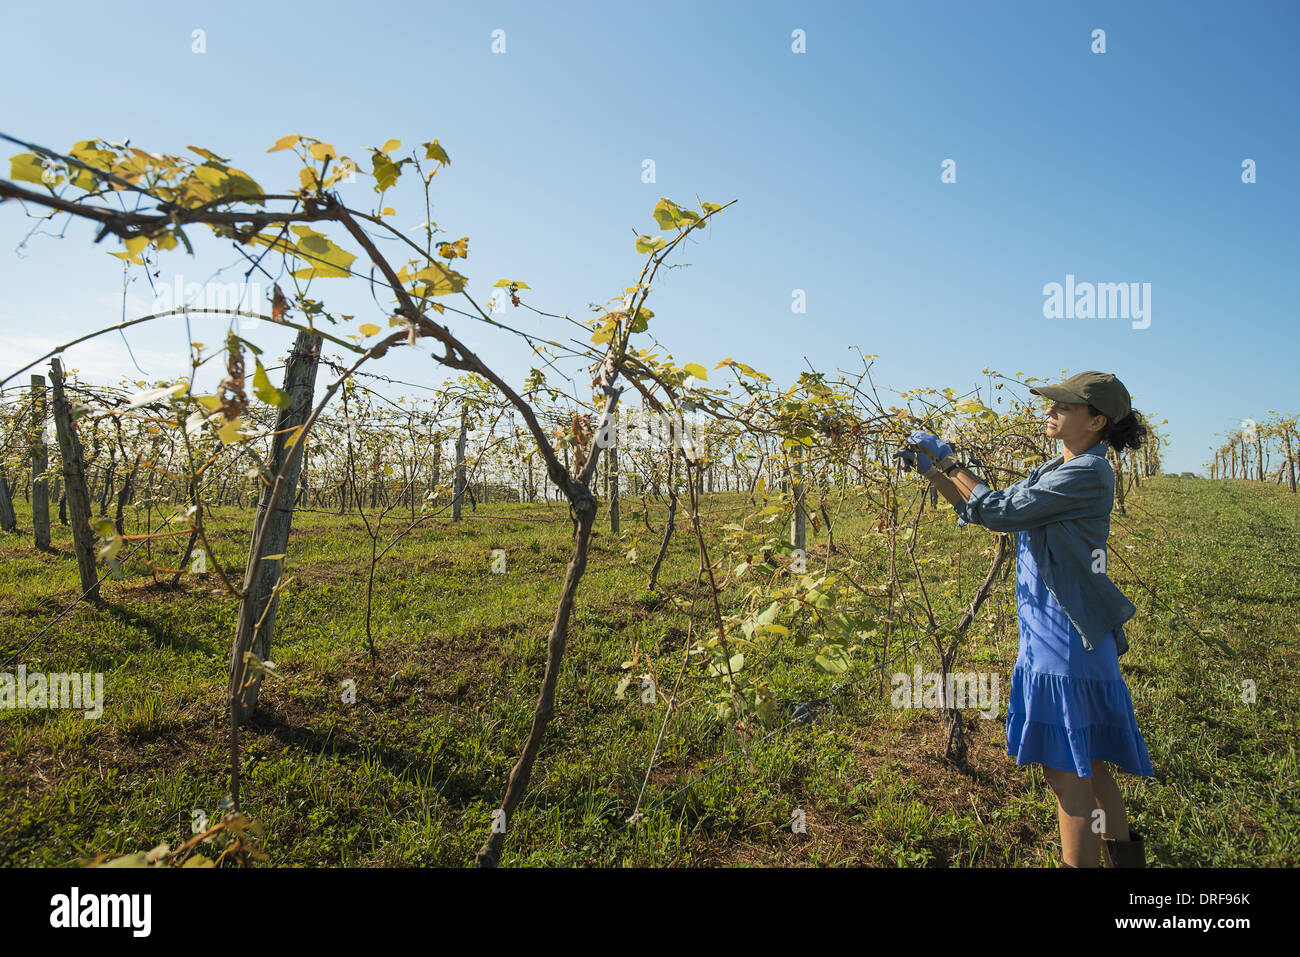 New York state USA vineyard with young vines trained along wires - Stock Image